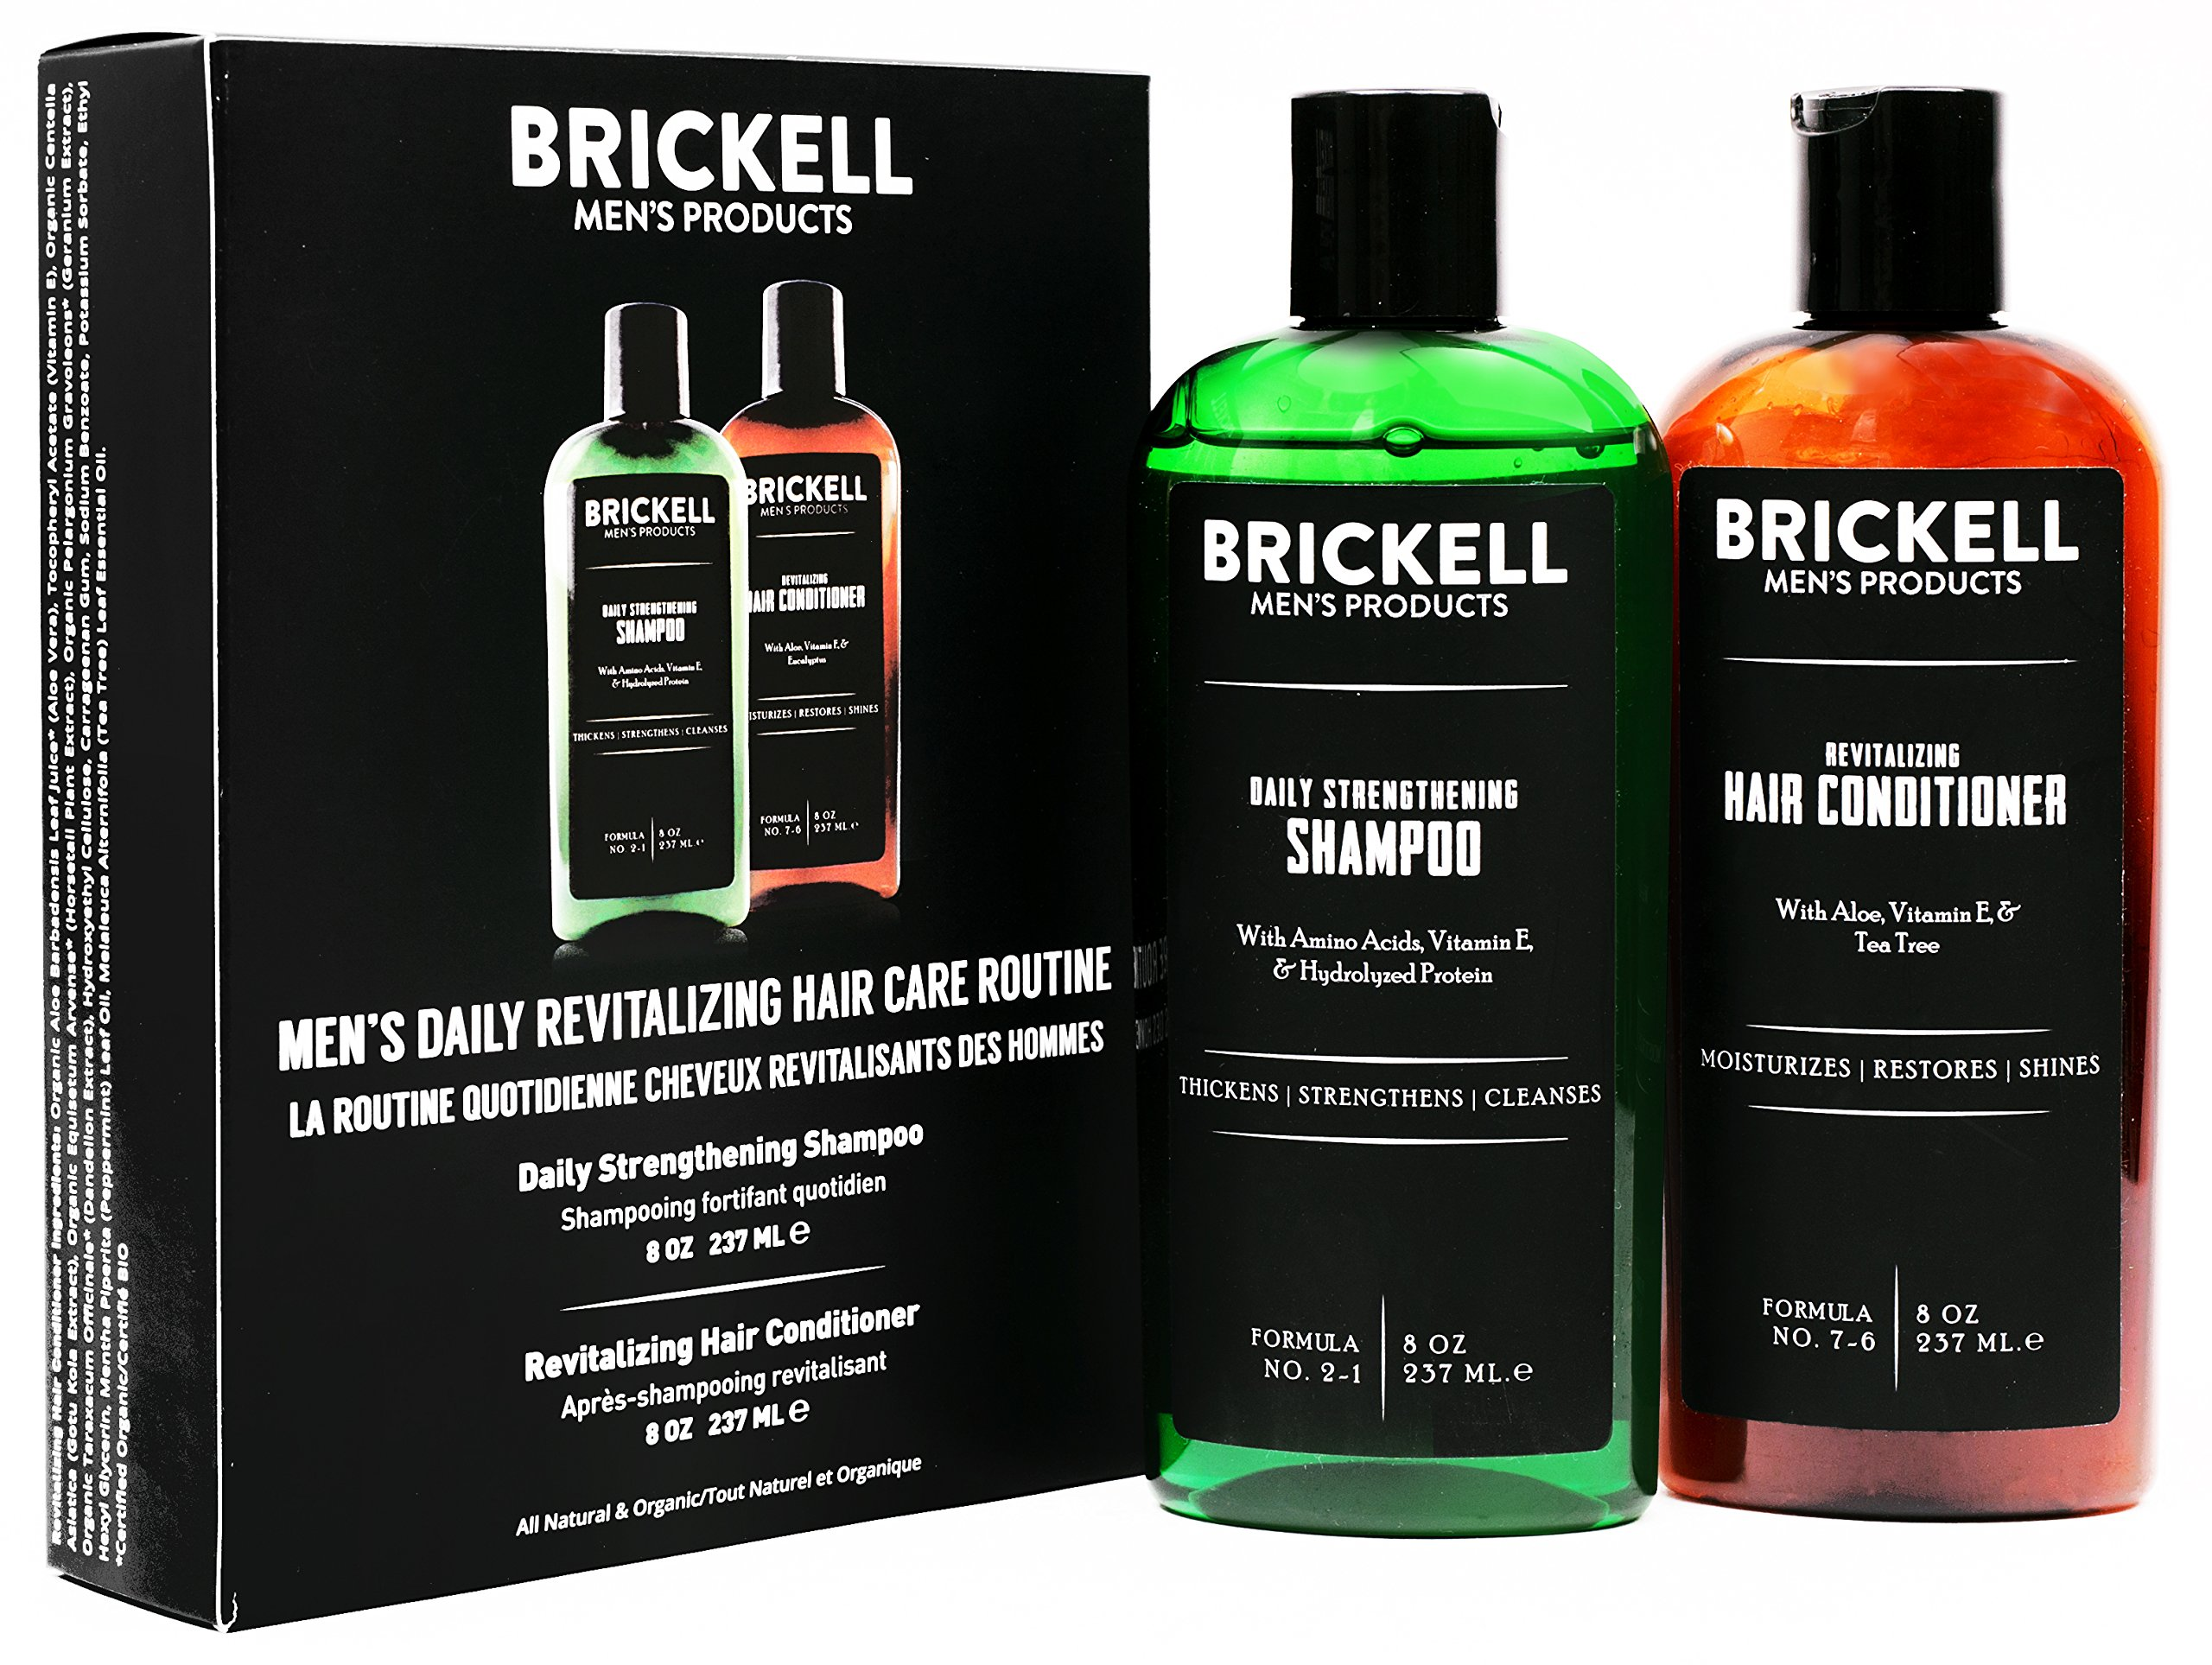 Brickell Men's Daily Revitalizing Hair Care Routine, Mint and Tea Tree Oil Shampoo, Strength and Volume Enhancing Conditioner, New Formula, Natural and Organic by Brickell Men's Products